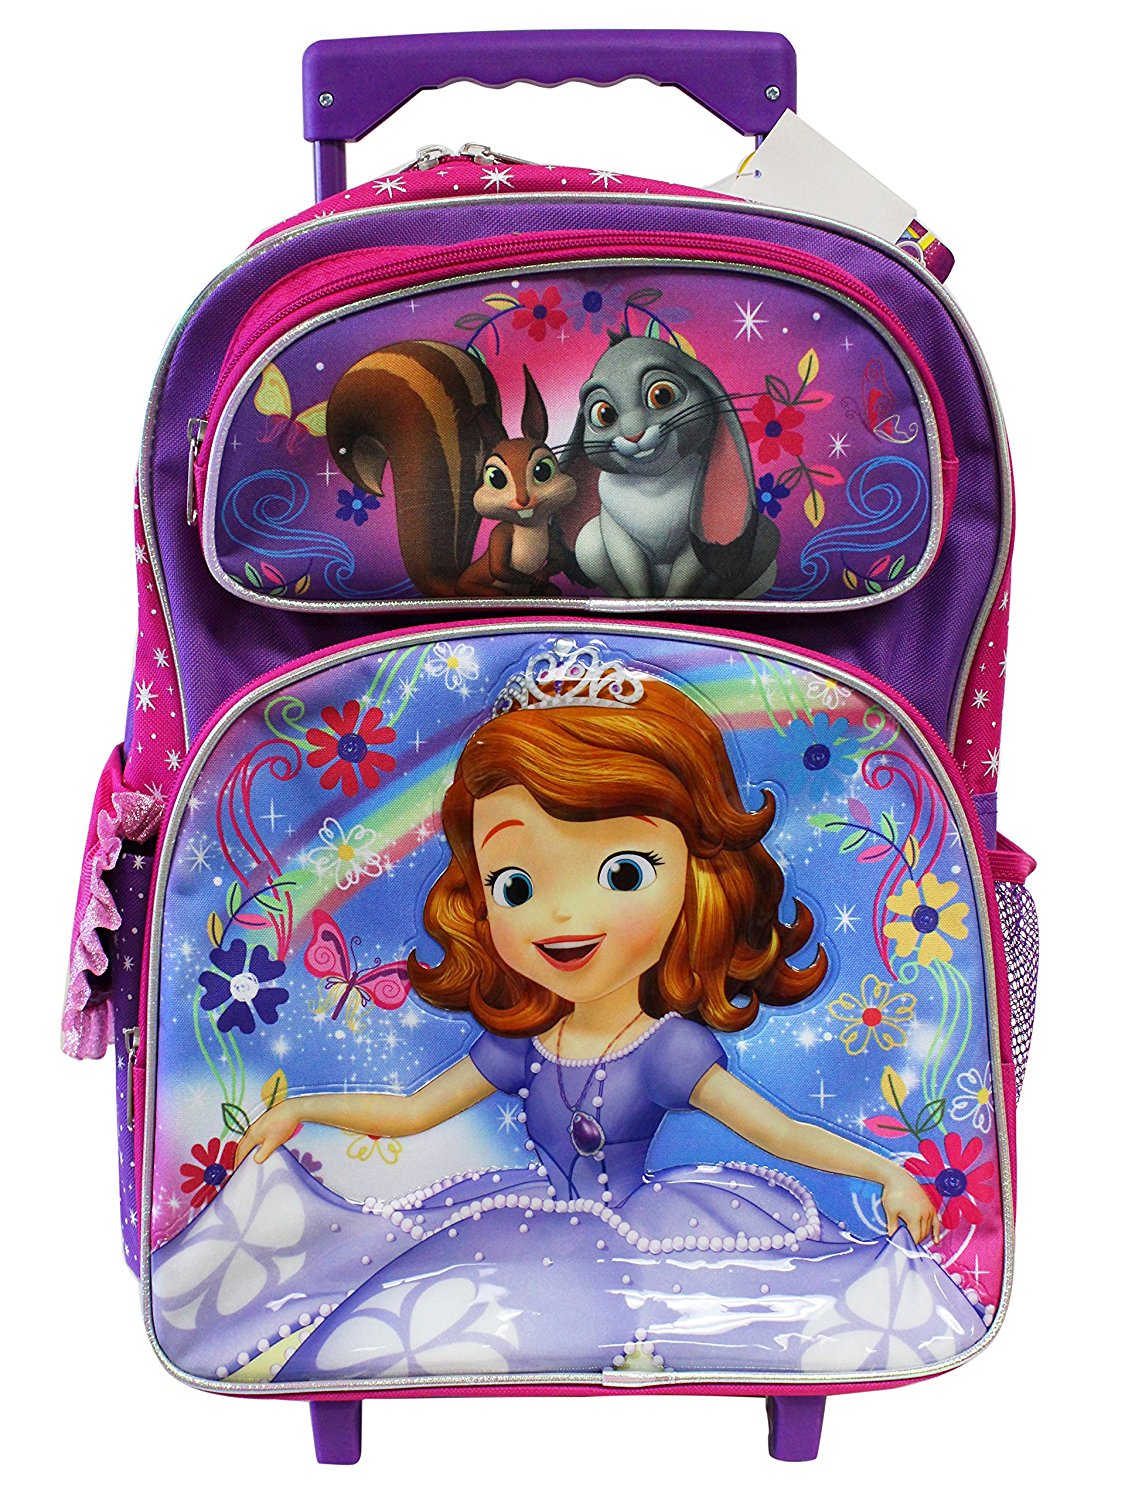 8c593b8e666 Get Quotations · Disney s Sofia The First Rainbow Magic Full Size Rolling  Backpack (16in)